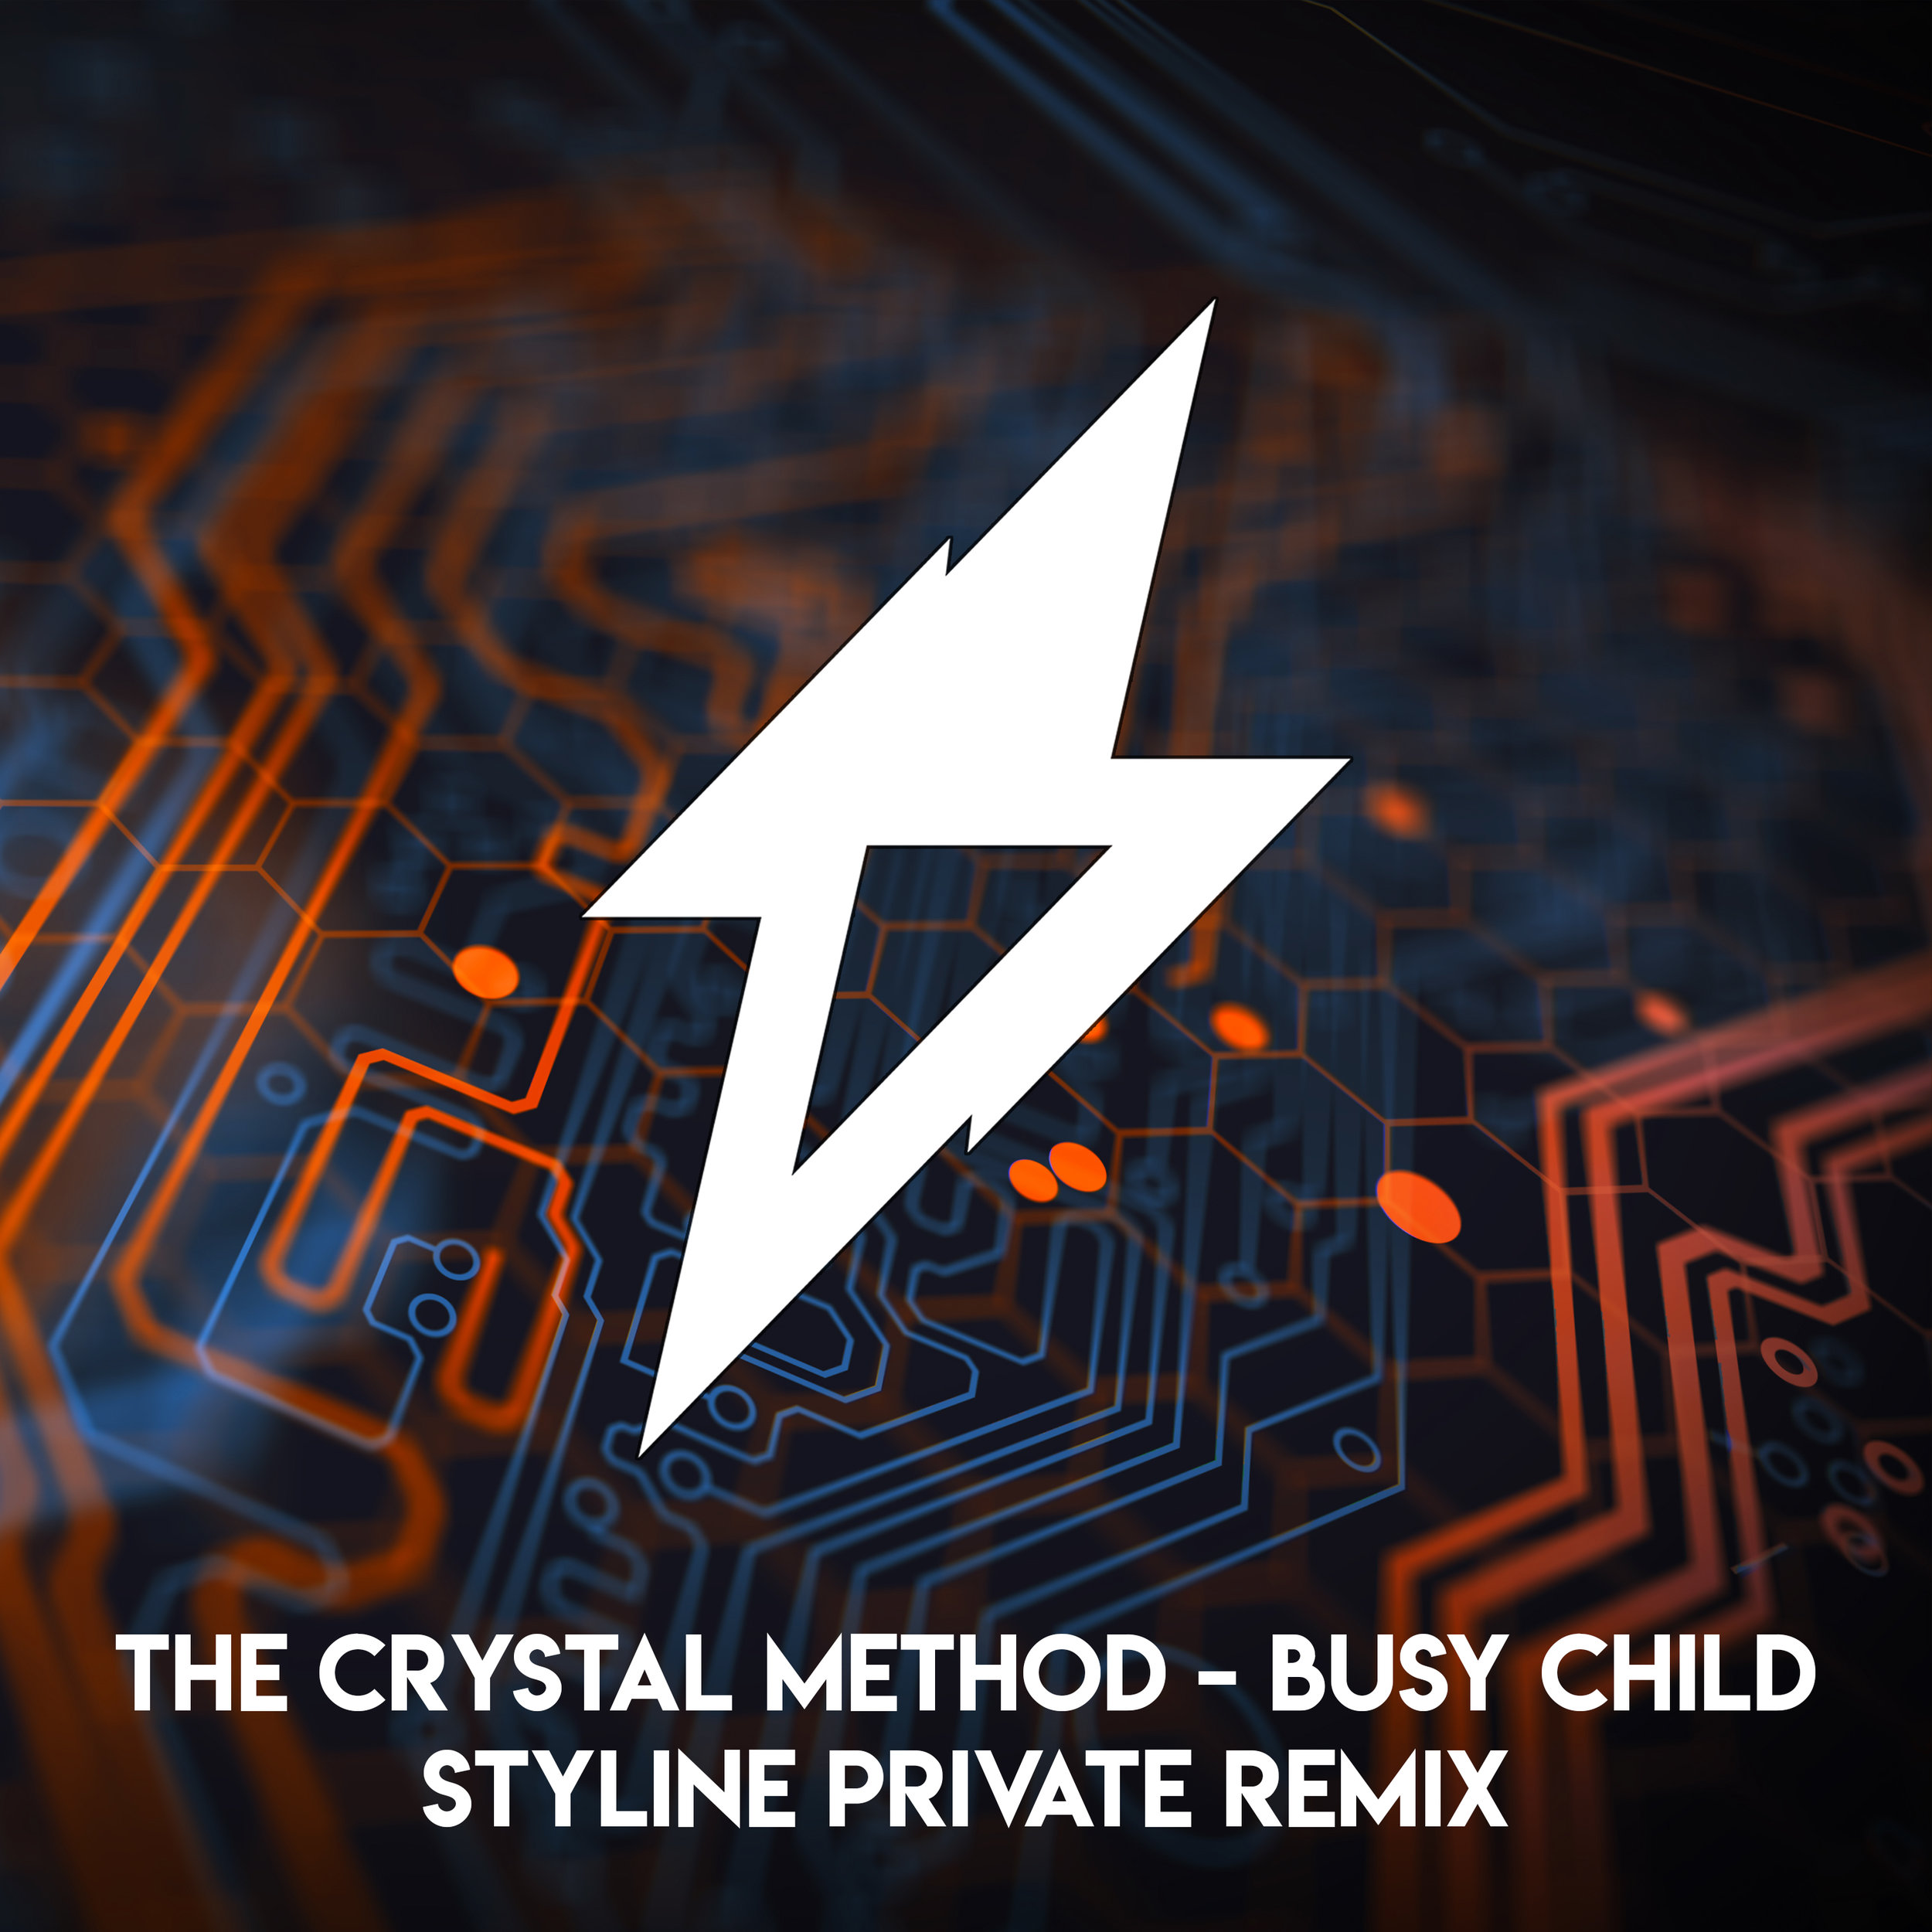 The Crystal Method - Busy Child (Styline Private Remix).jpg